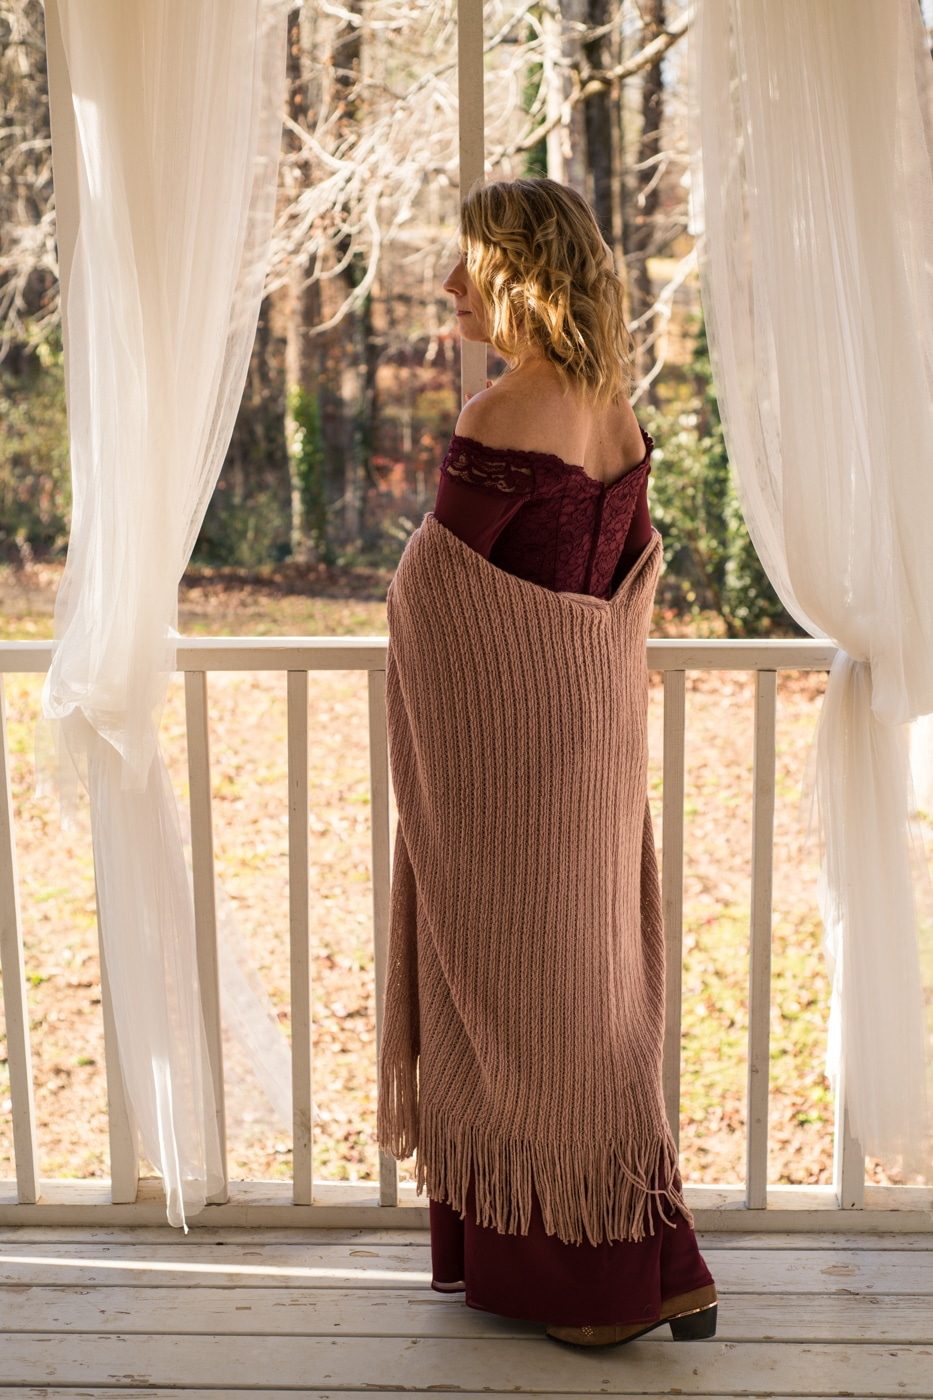 bride looks out on backyard in burgundy dress with pink shawl